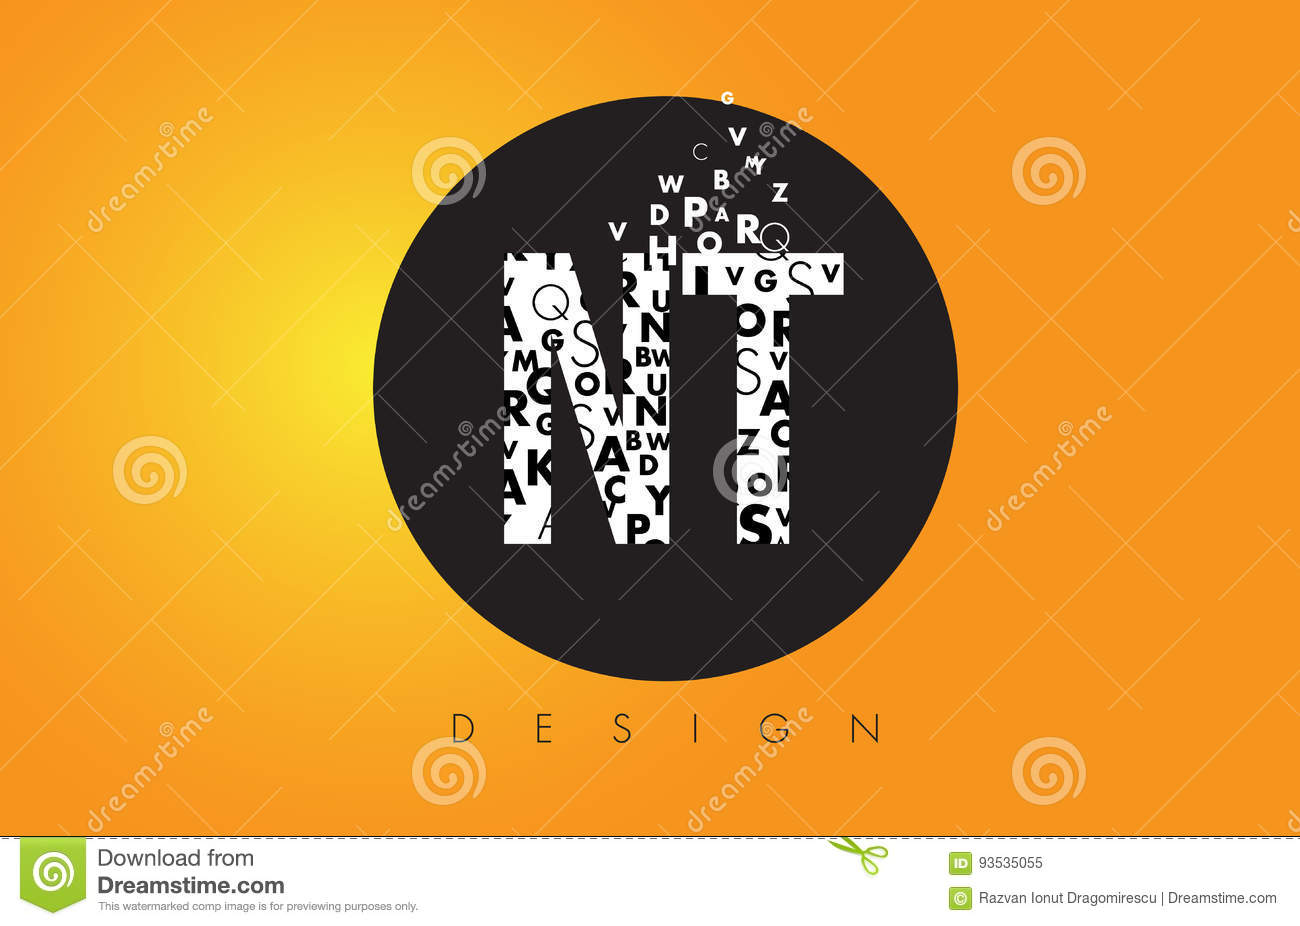 Nt N T Logo Made Of Small Letters With Black Circle And Yellow B